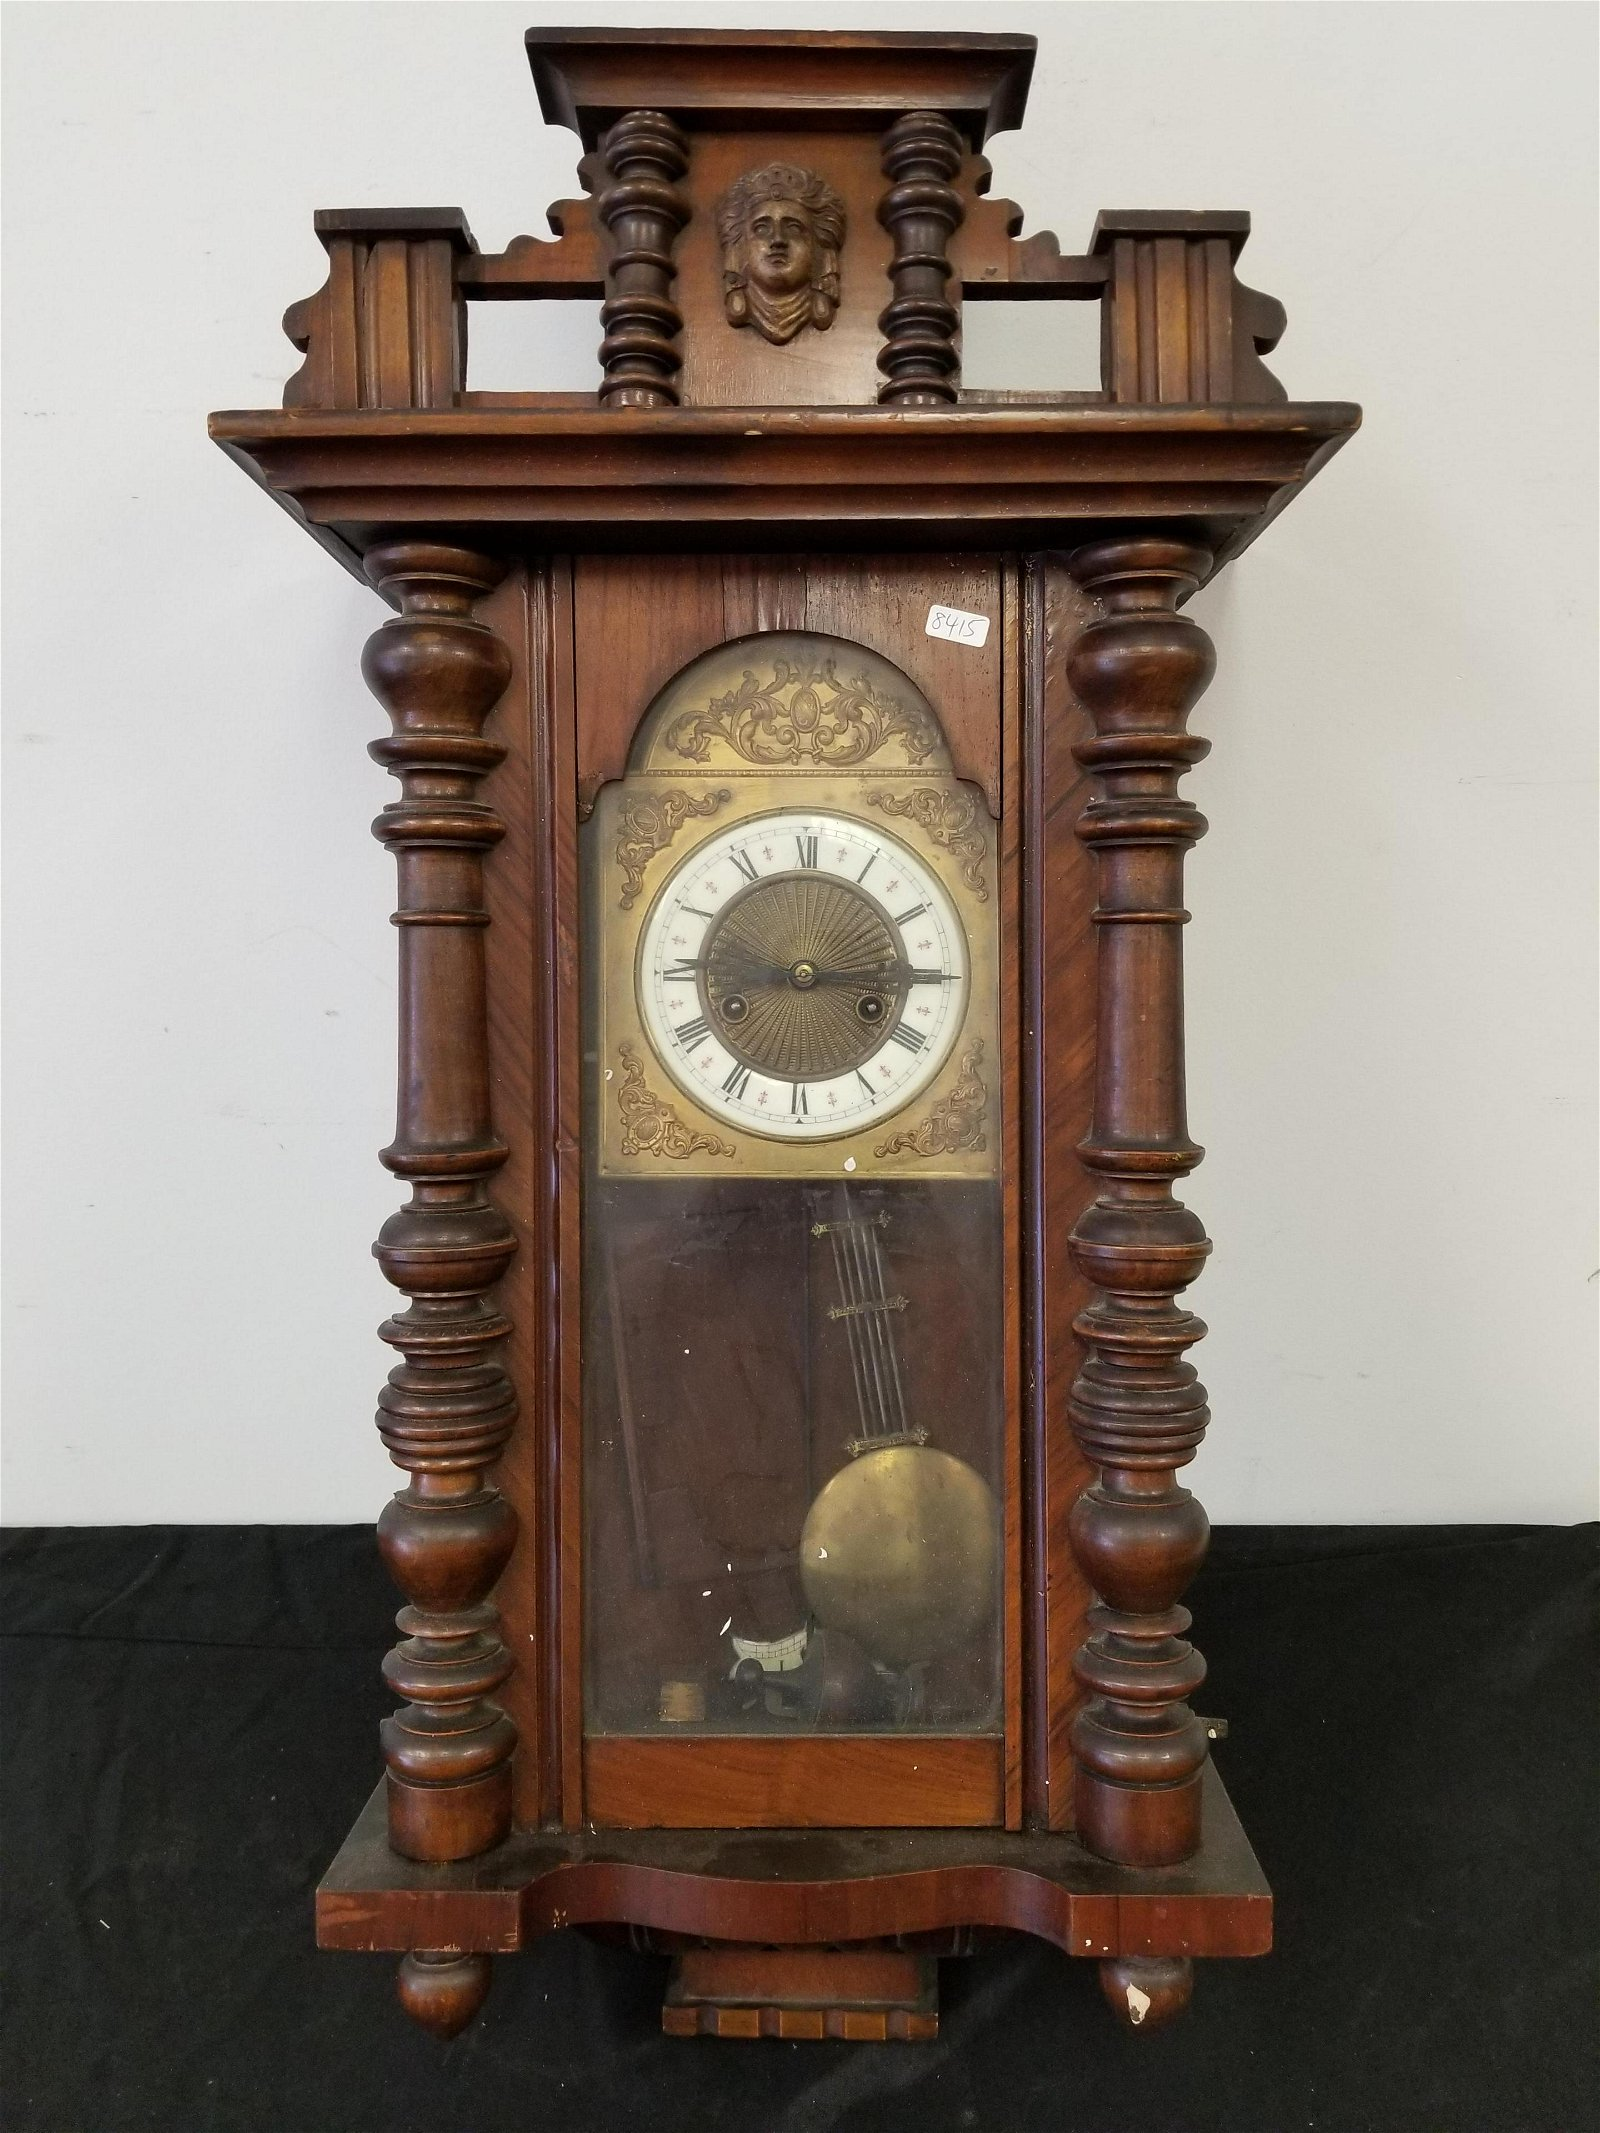 Antique Exceptional Wall Mounted Clock w/ Enamel